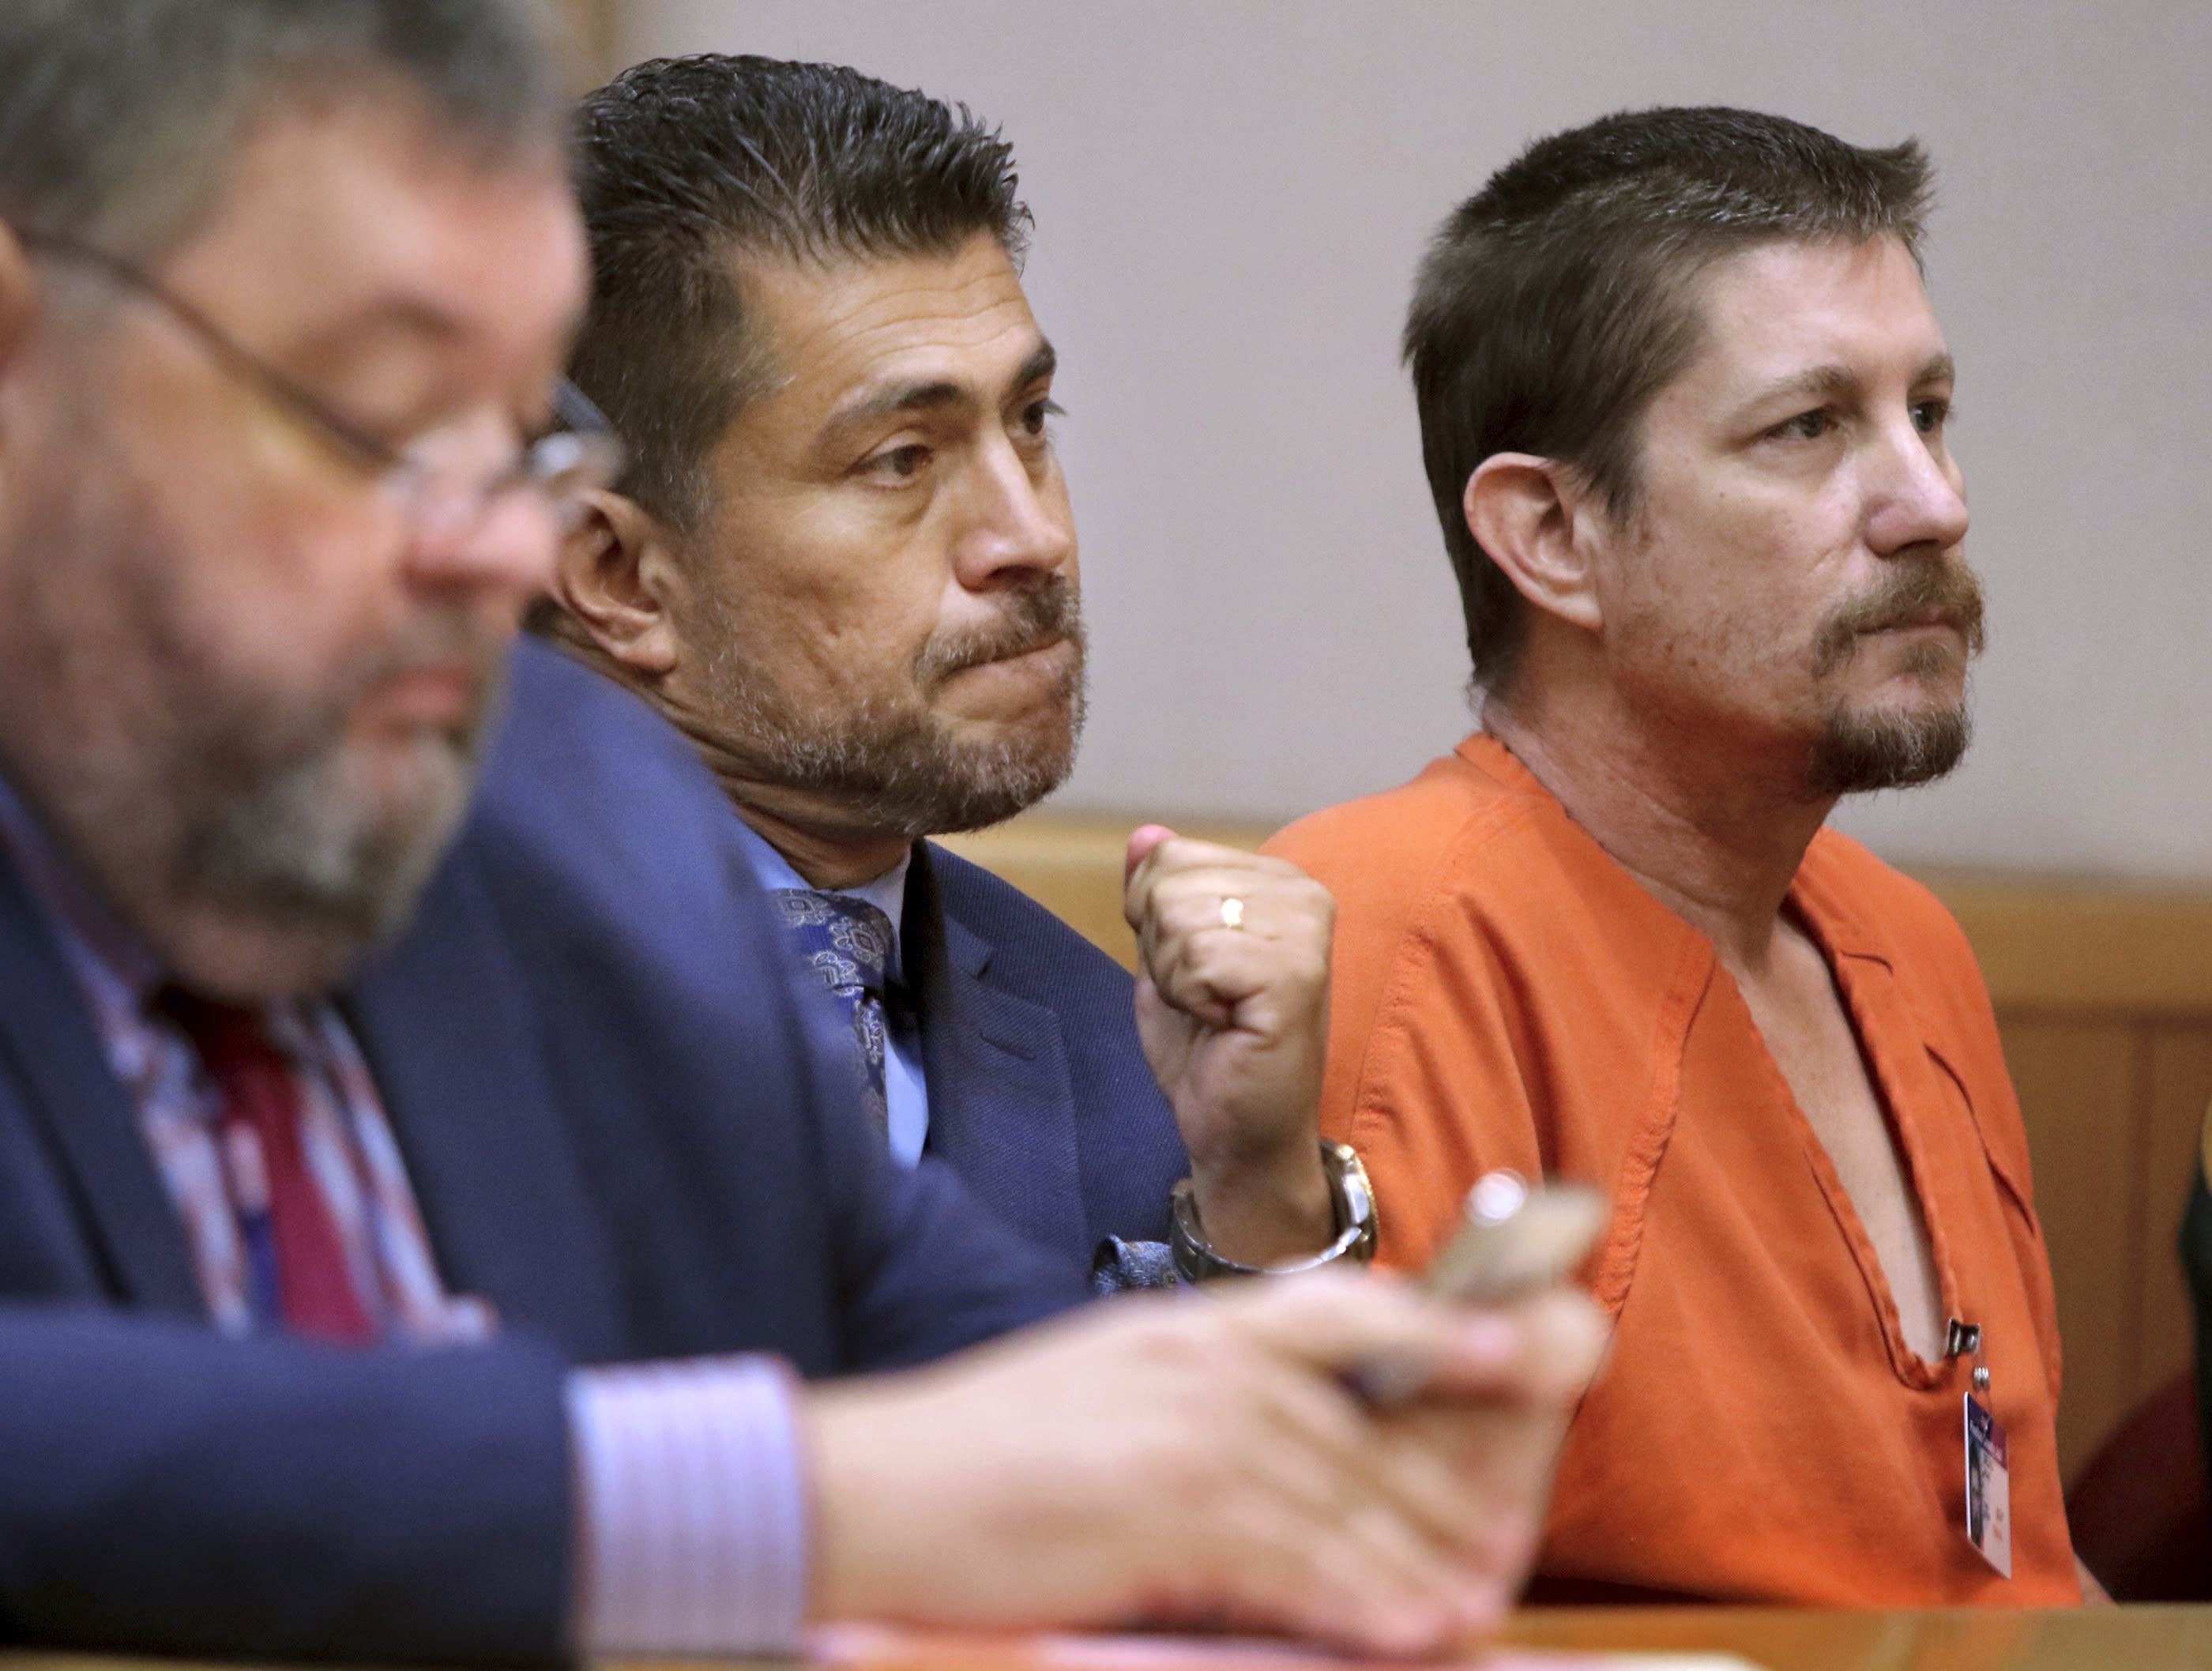 Michael Drejka Convicted Of Manslaughter In Shooting Death Of Markeis McGlockton